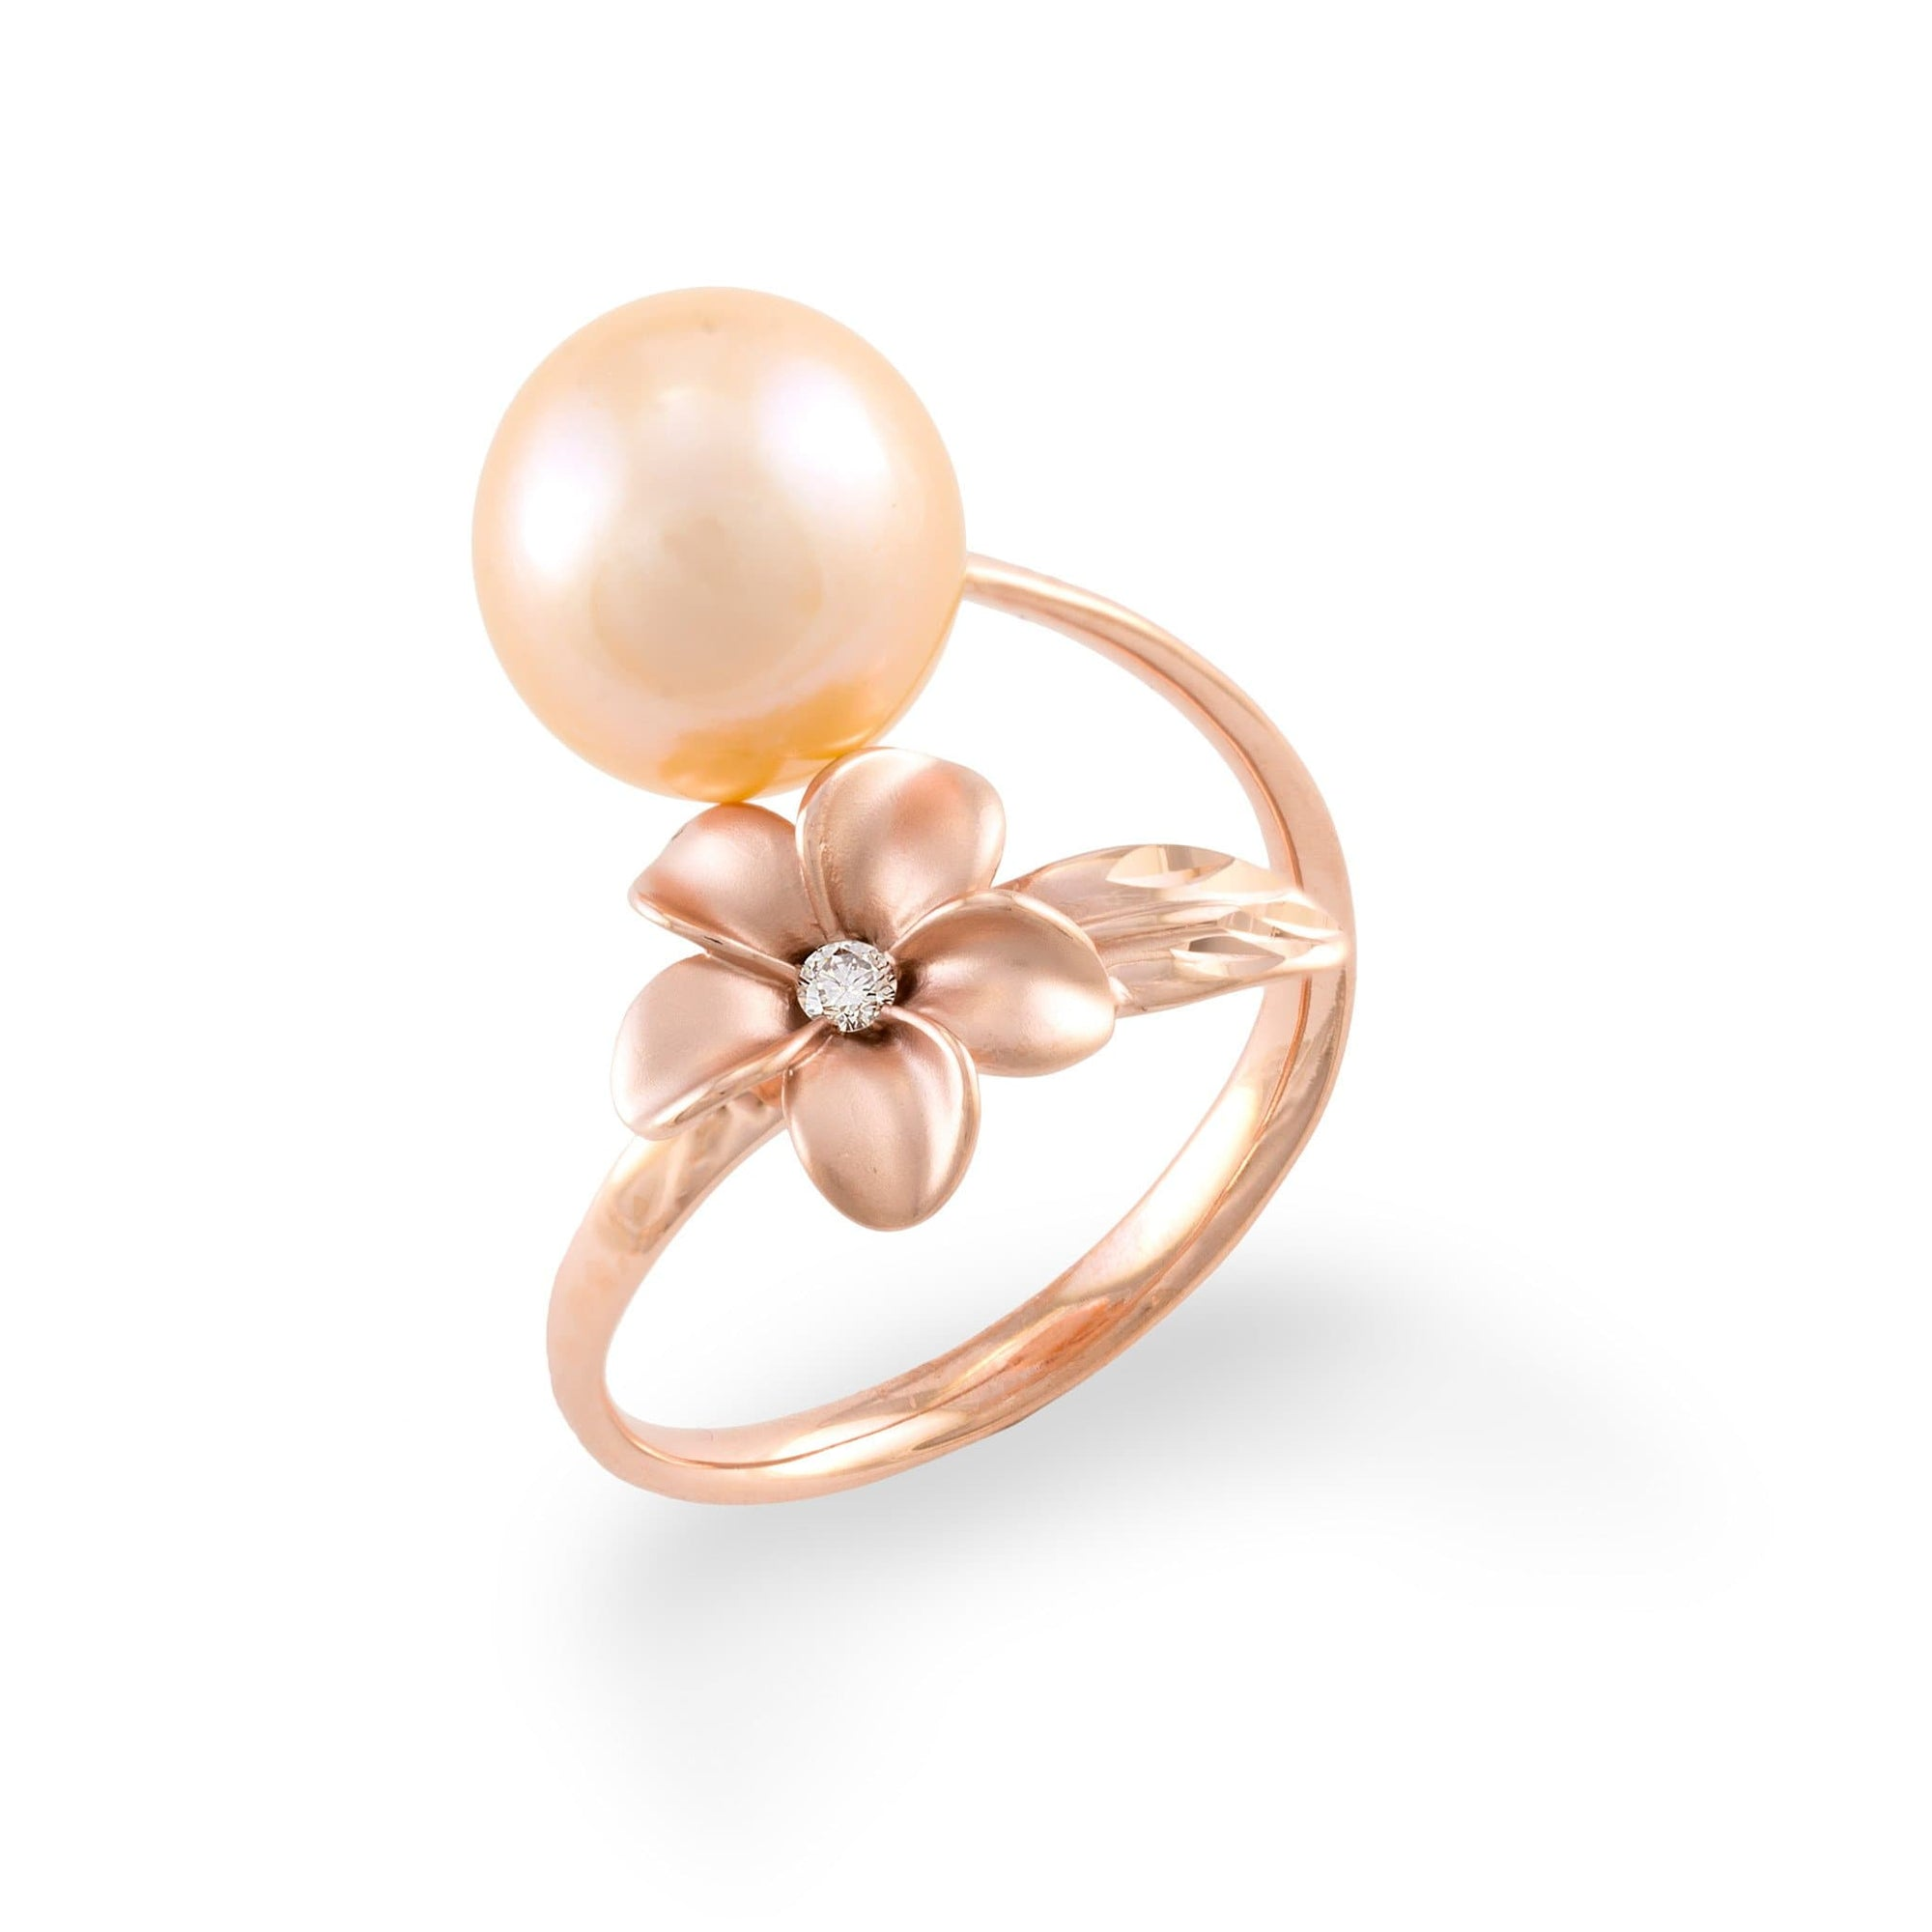 Plumeria Freshwater Pearl Ring with Diamonds in 14K Rose Gold (10-11mm) - Maui Divers Jewelry